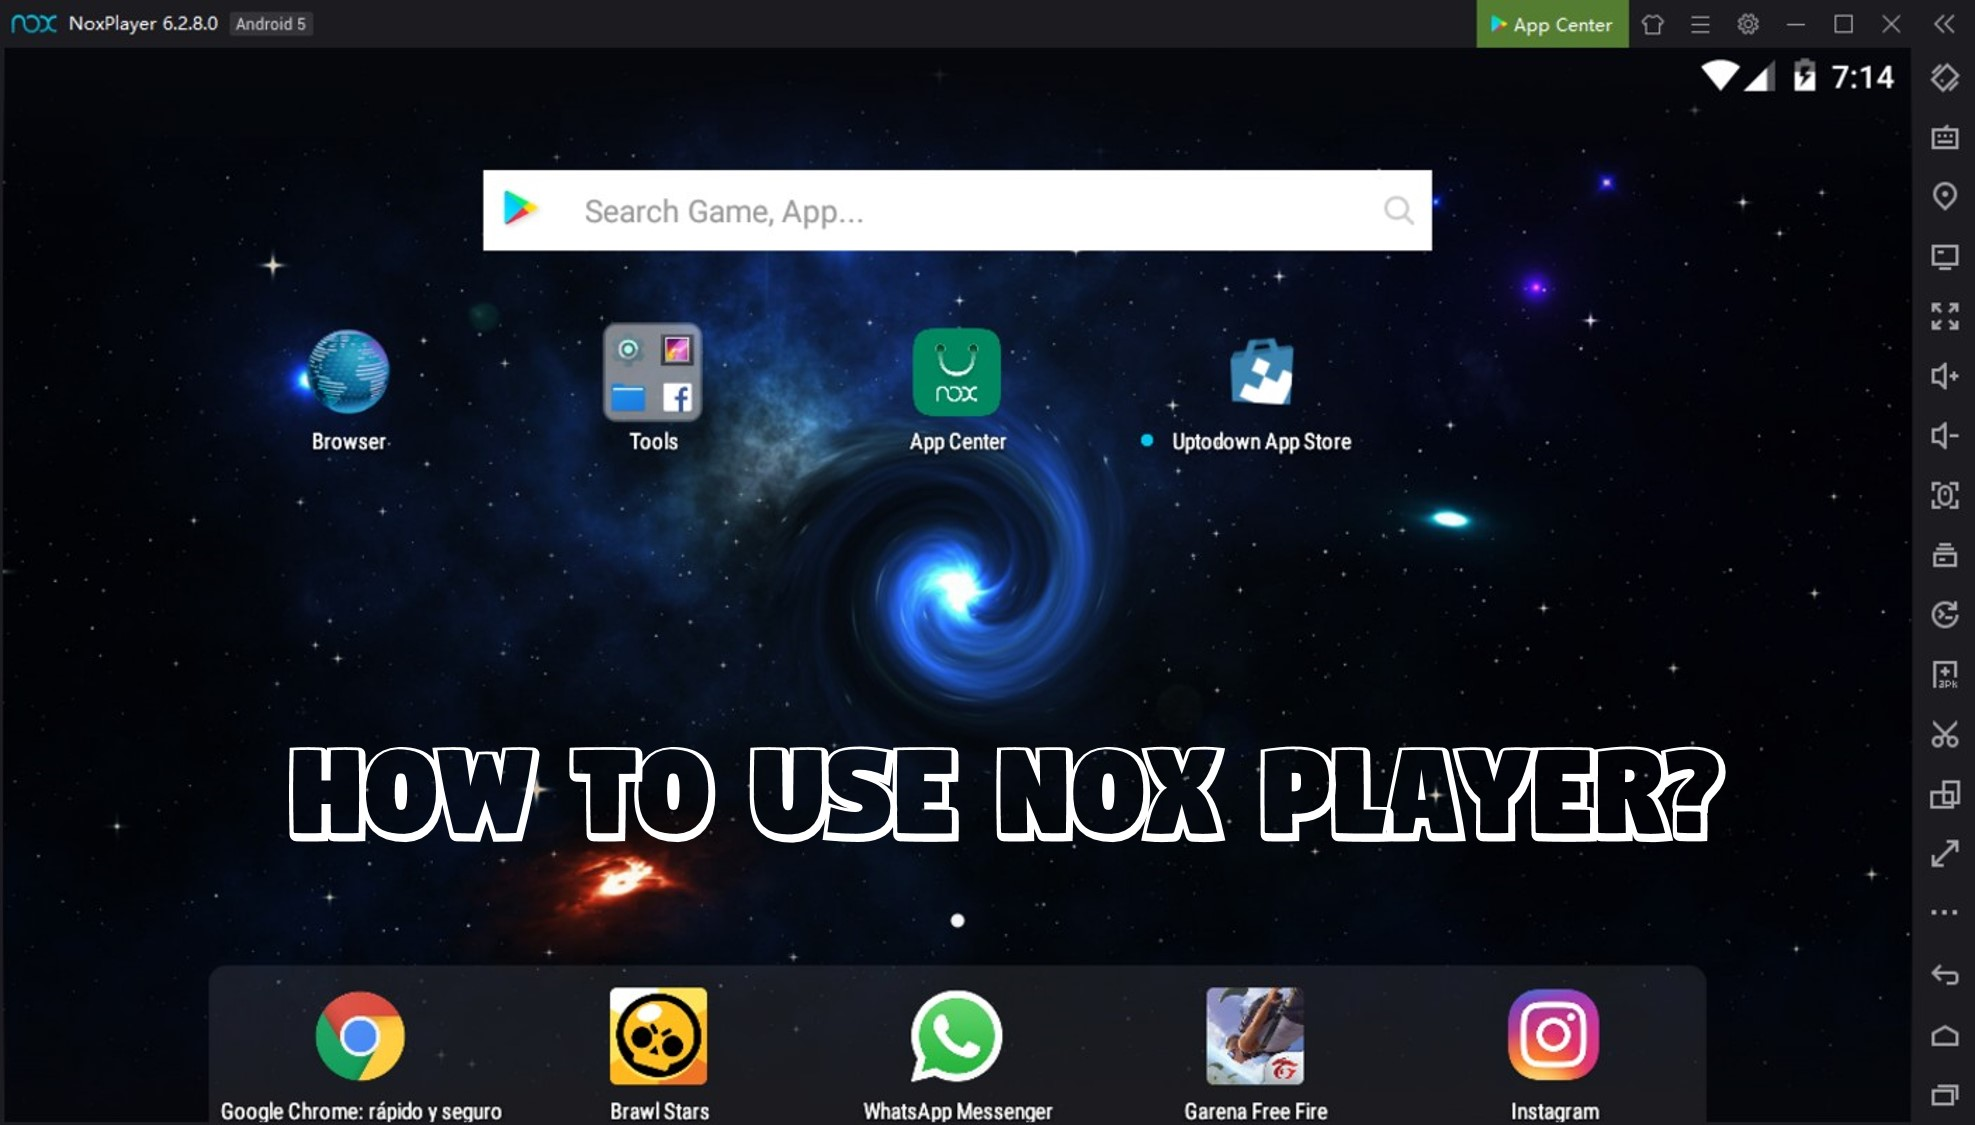 How to use Nox player